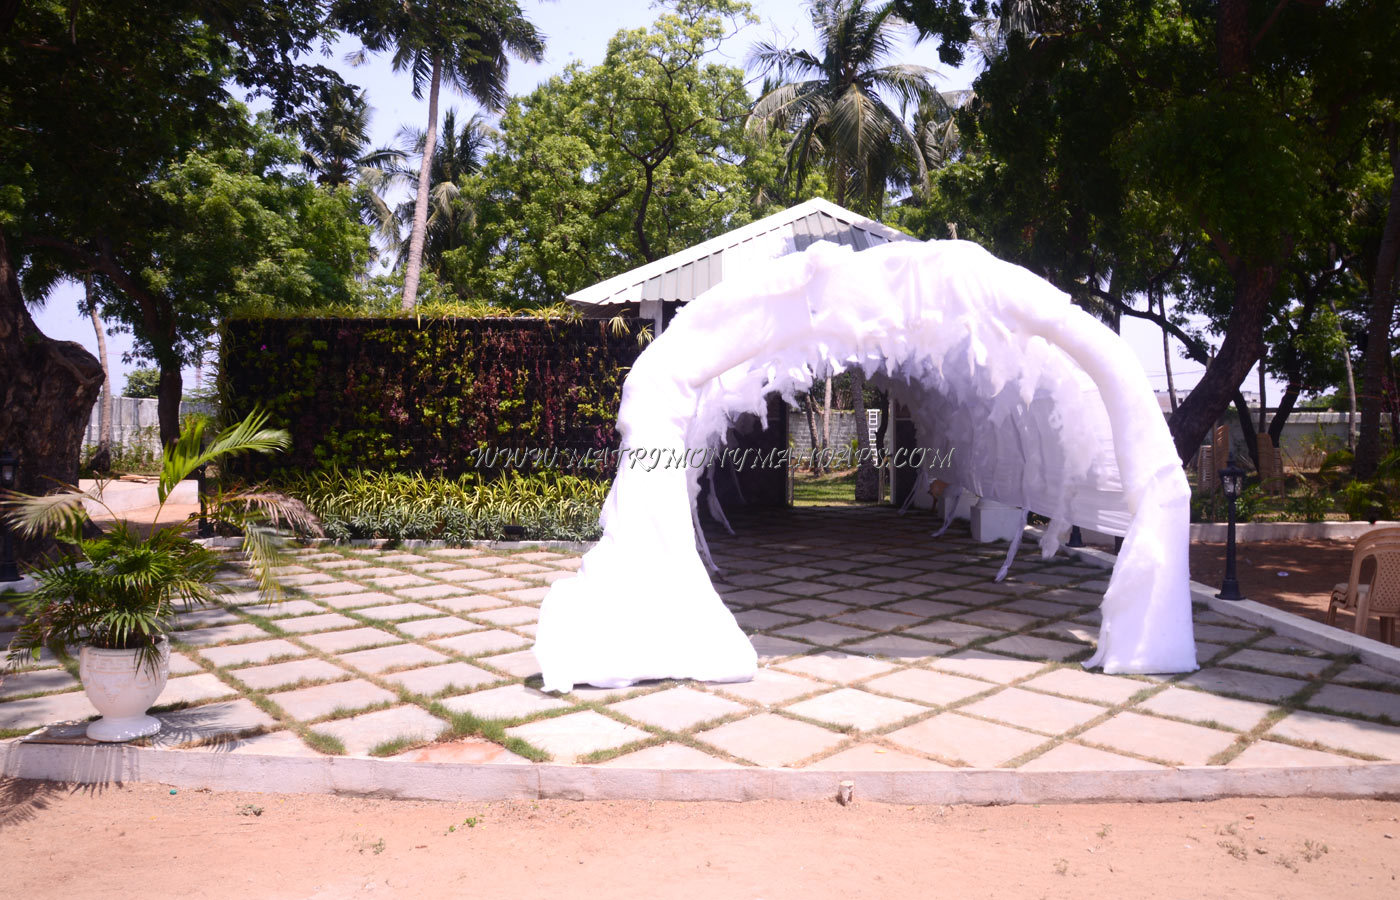 Find the availability of the Mantra Garden Open Lawn (A/C) in Nandanam, Chennai and avail special offers